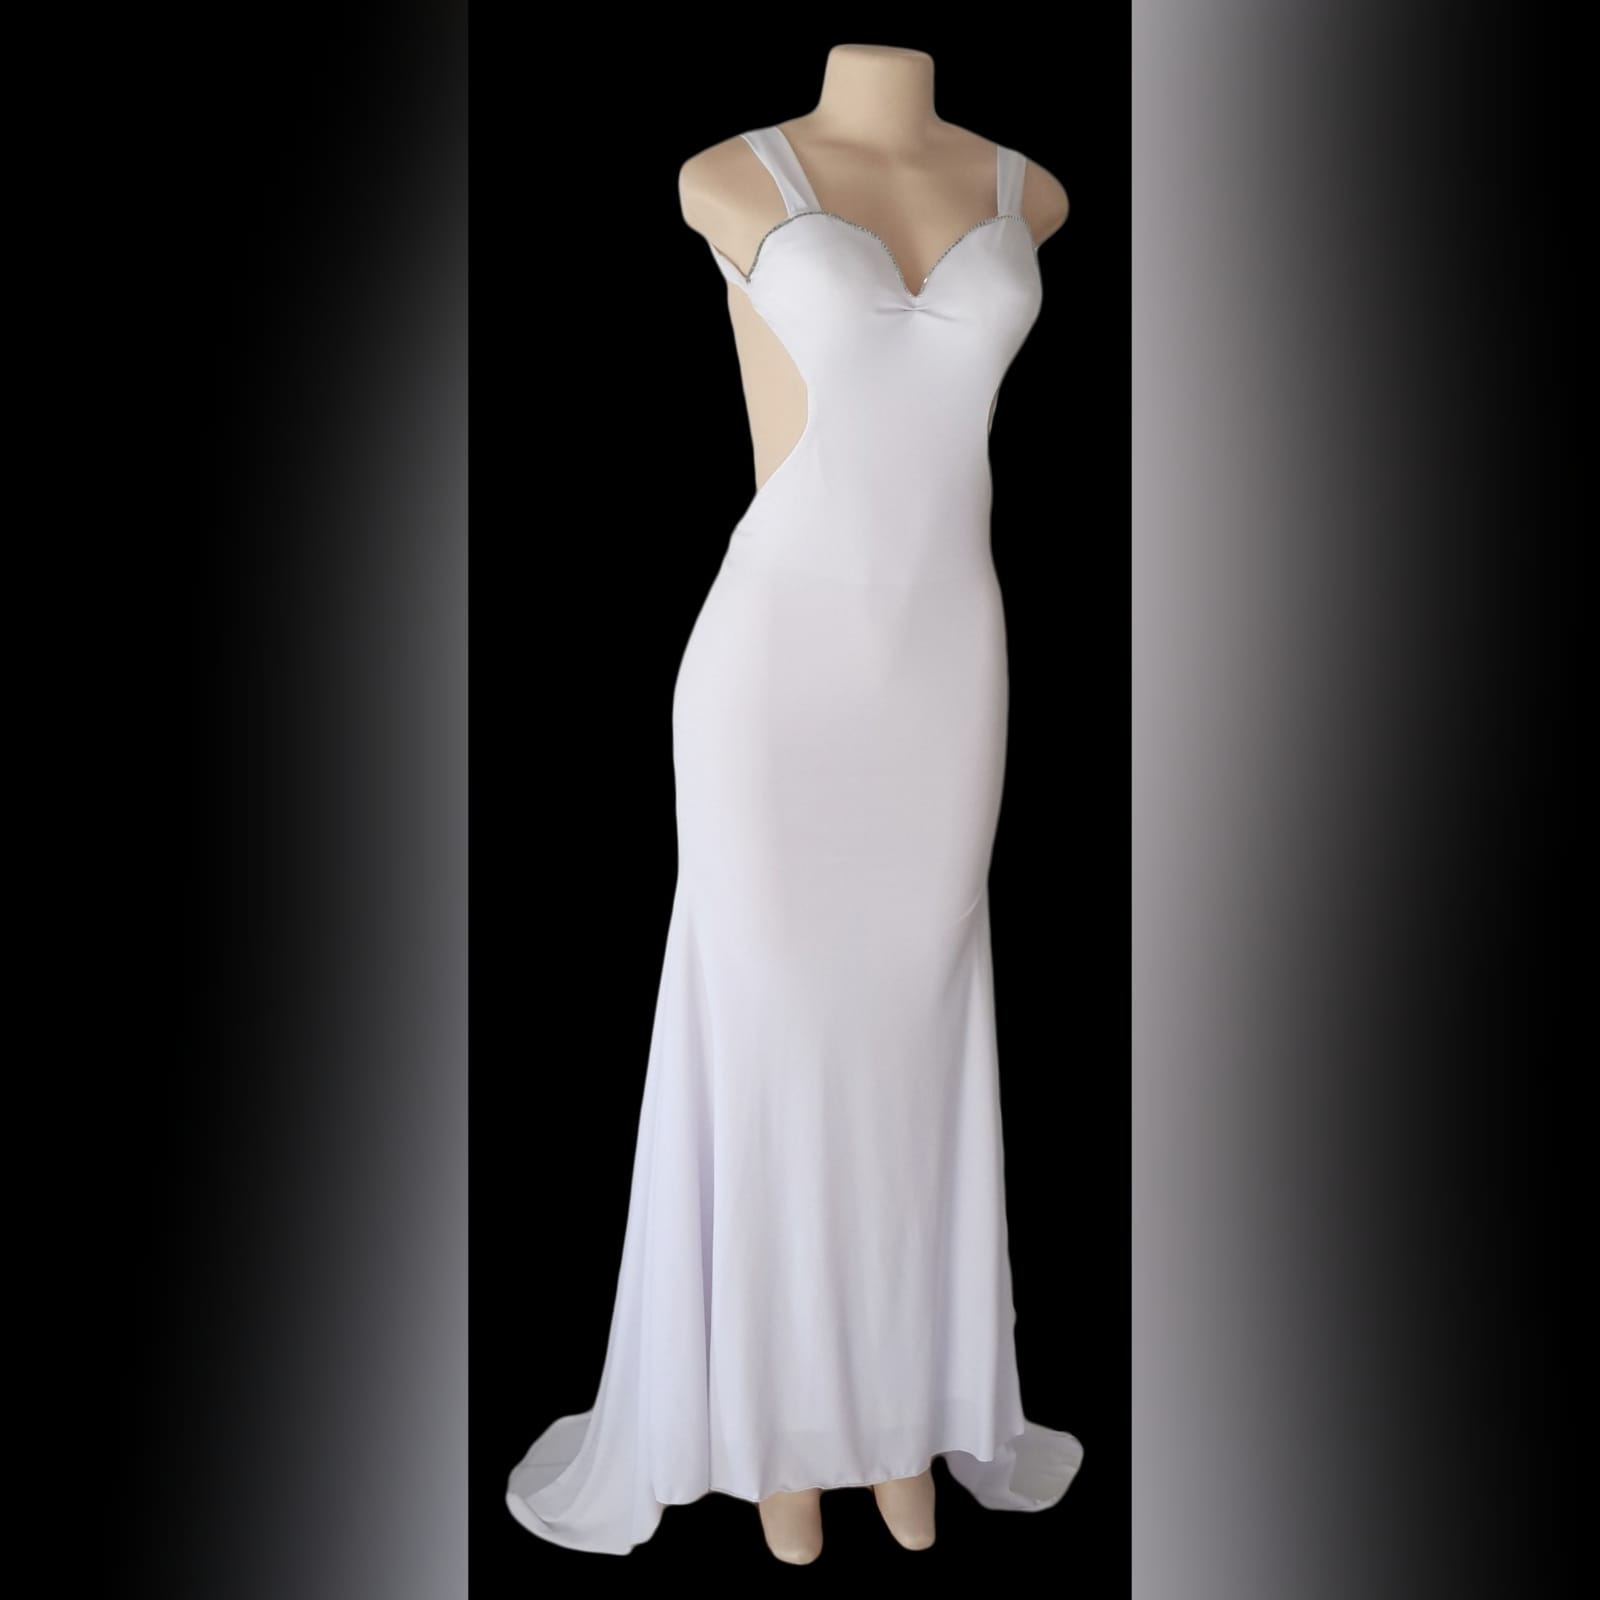 White sexy long evening dress with a low open back 1 white sexy long evening dress with a low open back, shoulder straps, sweetheart neckline with a diamante finish and a train